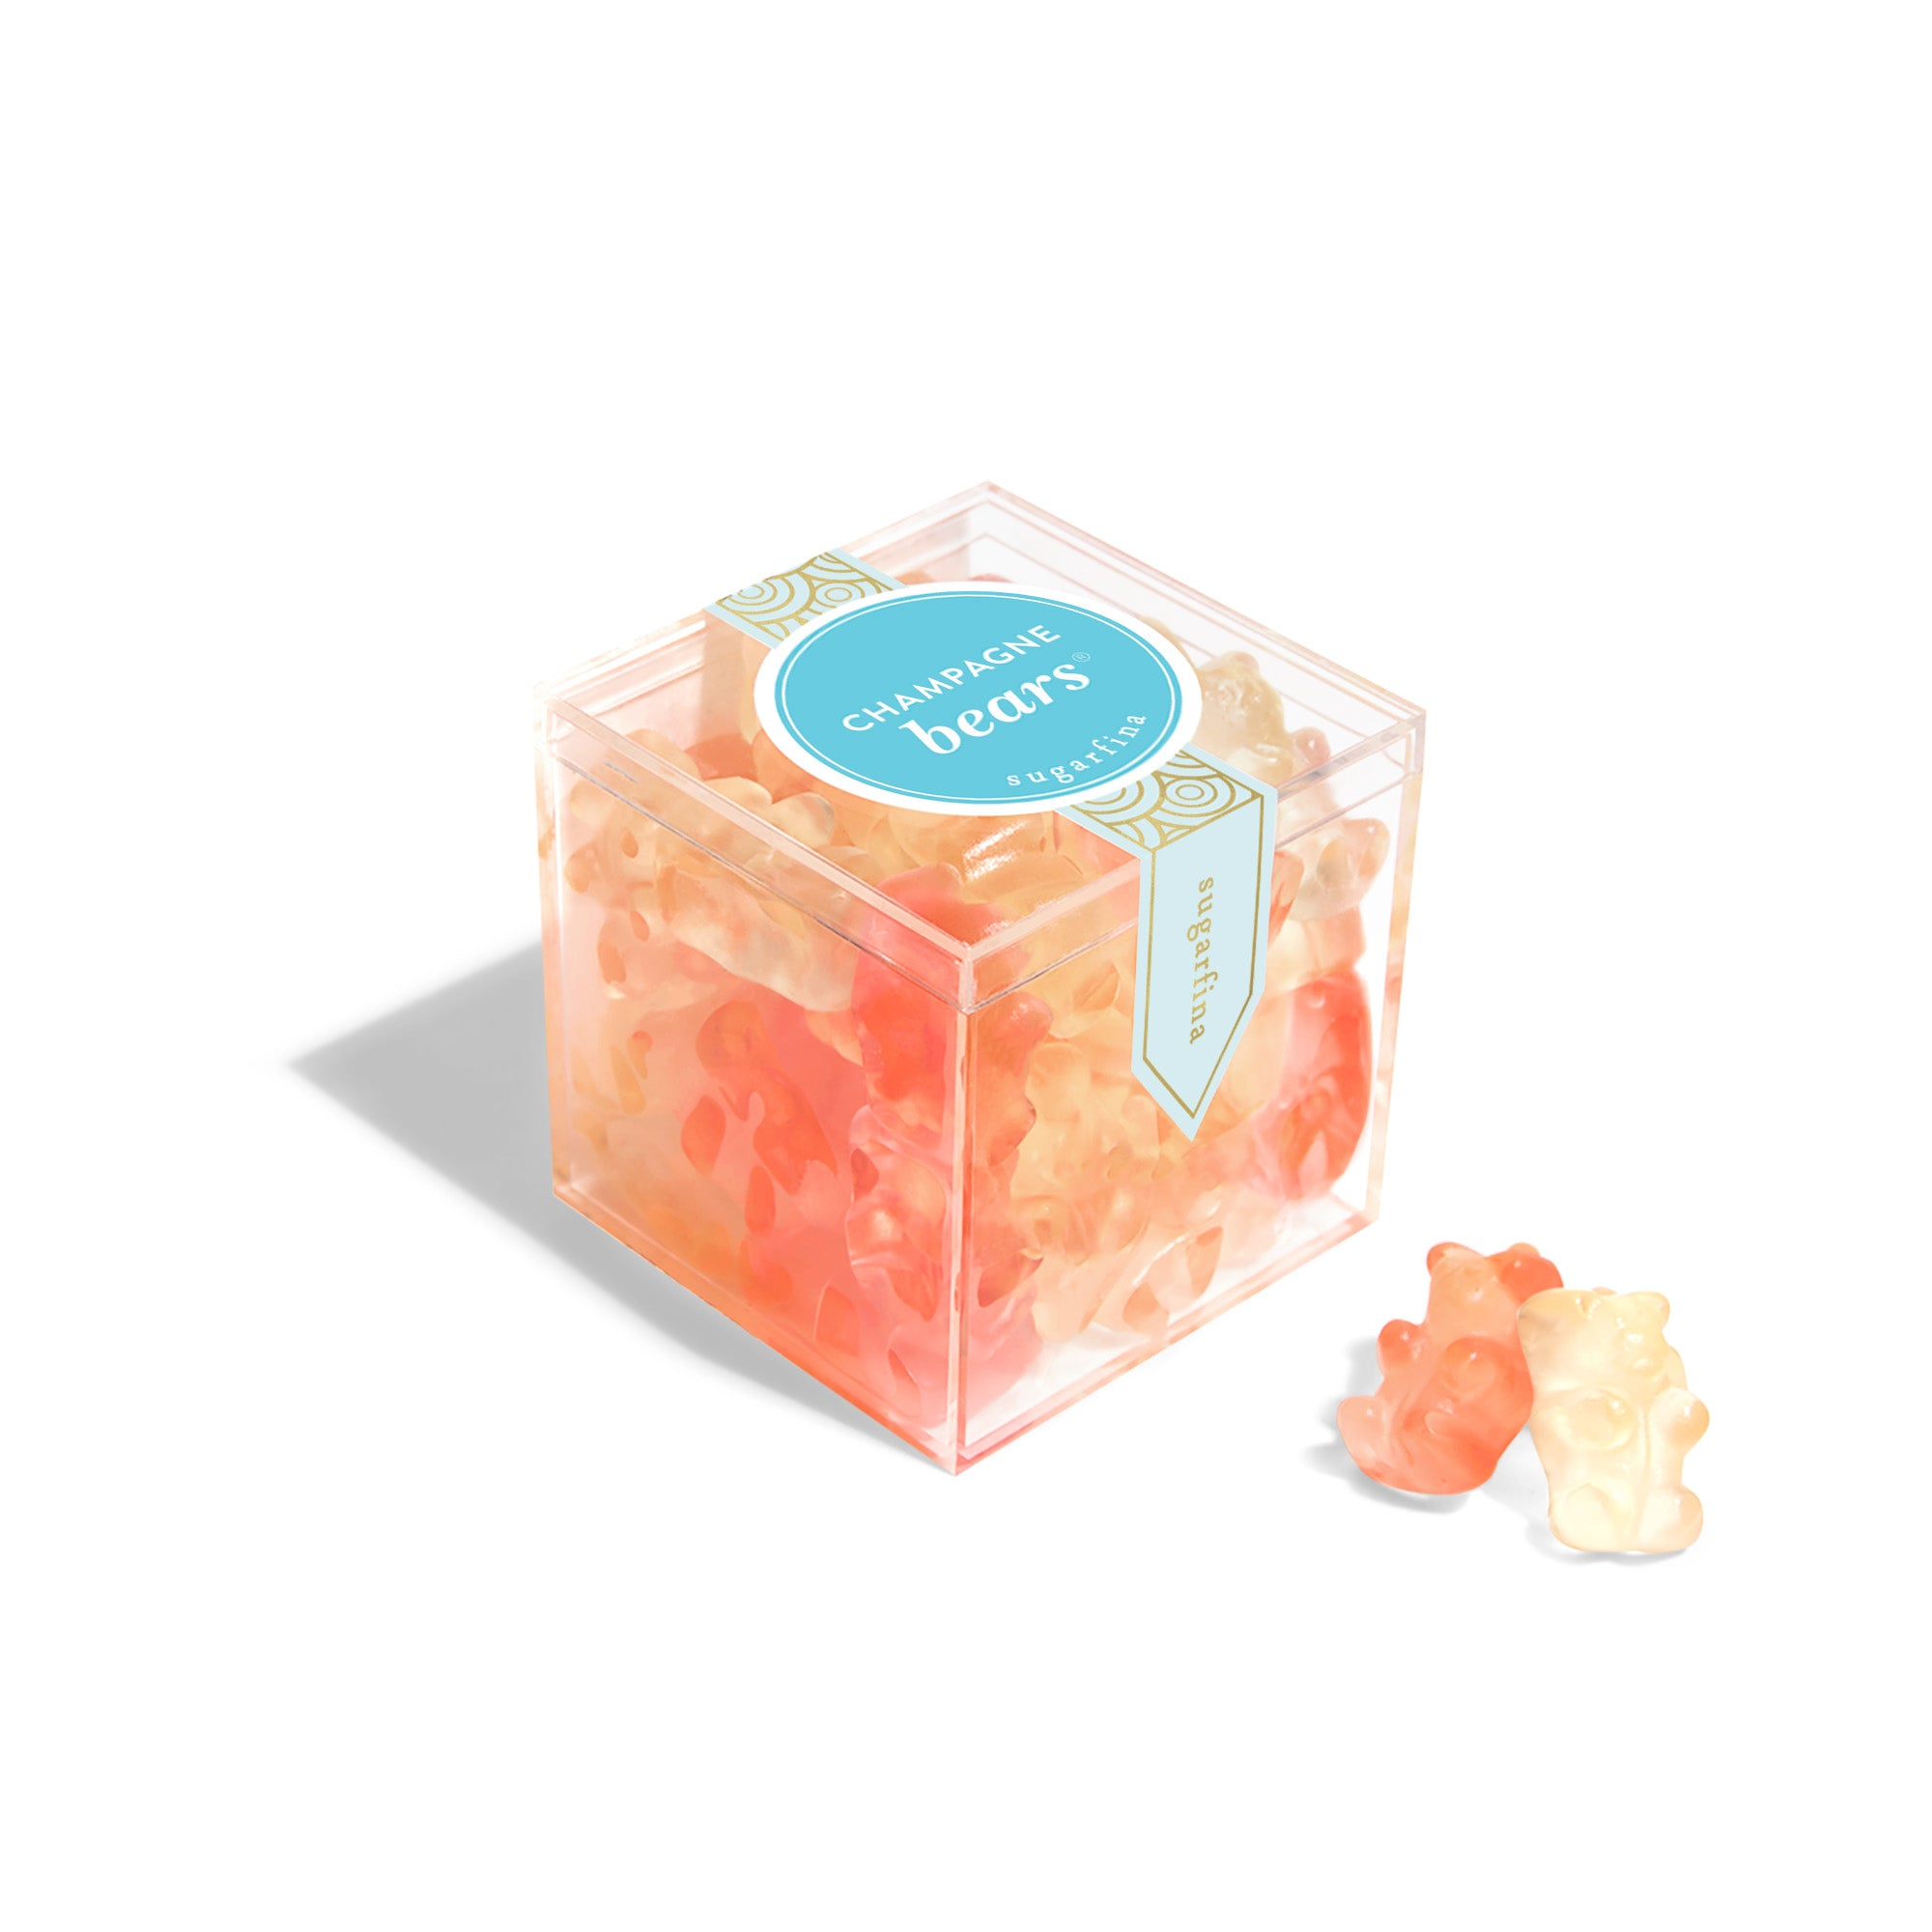 The Candy Cube of Champagne Bears